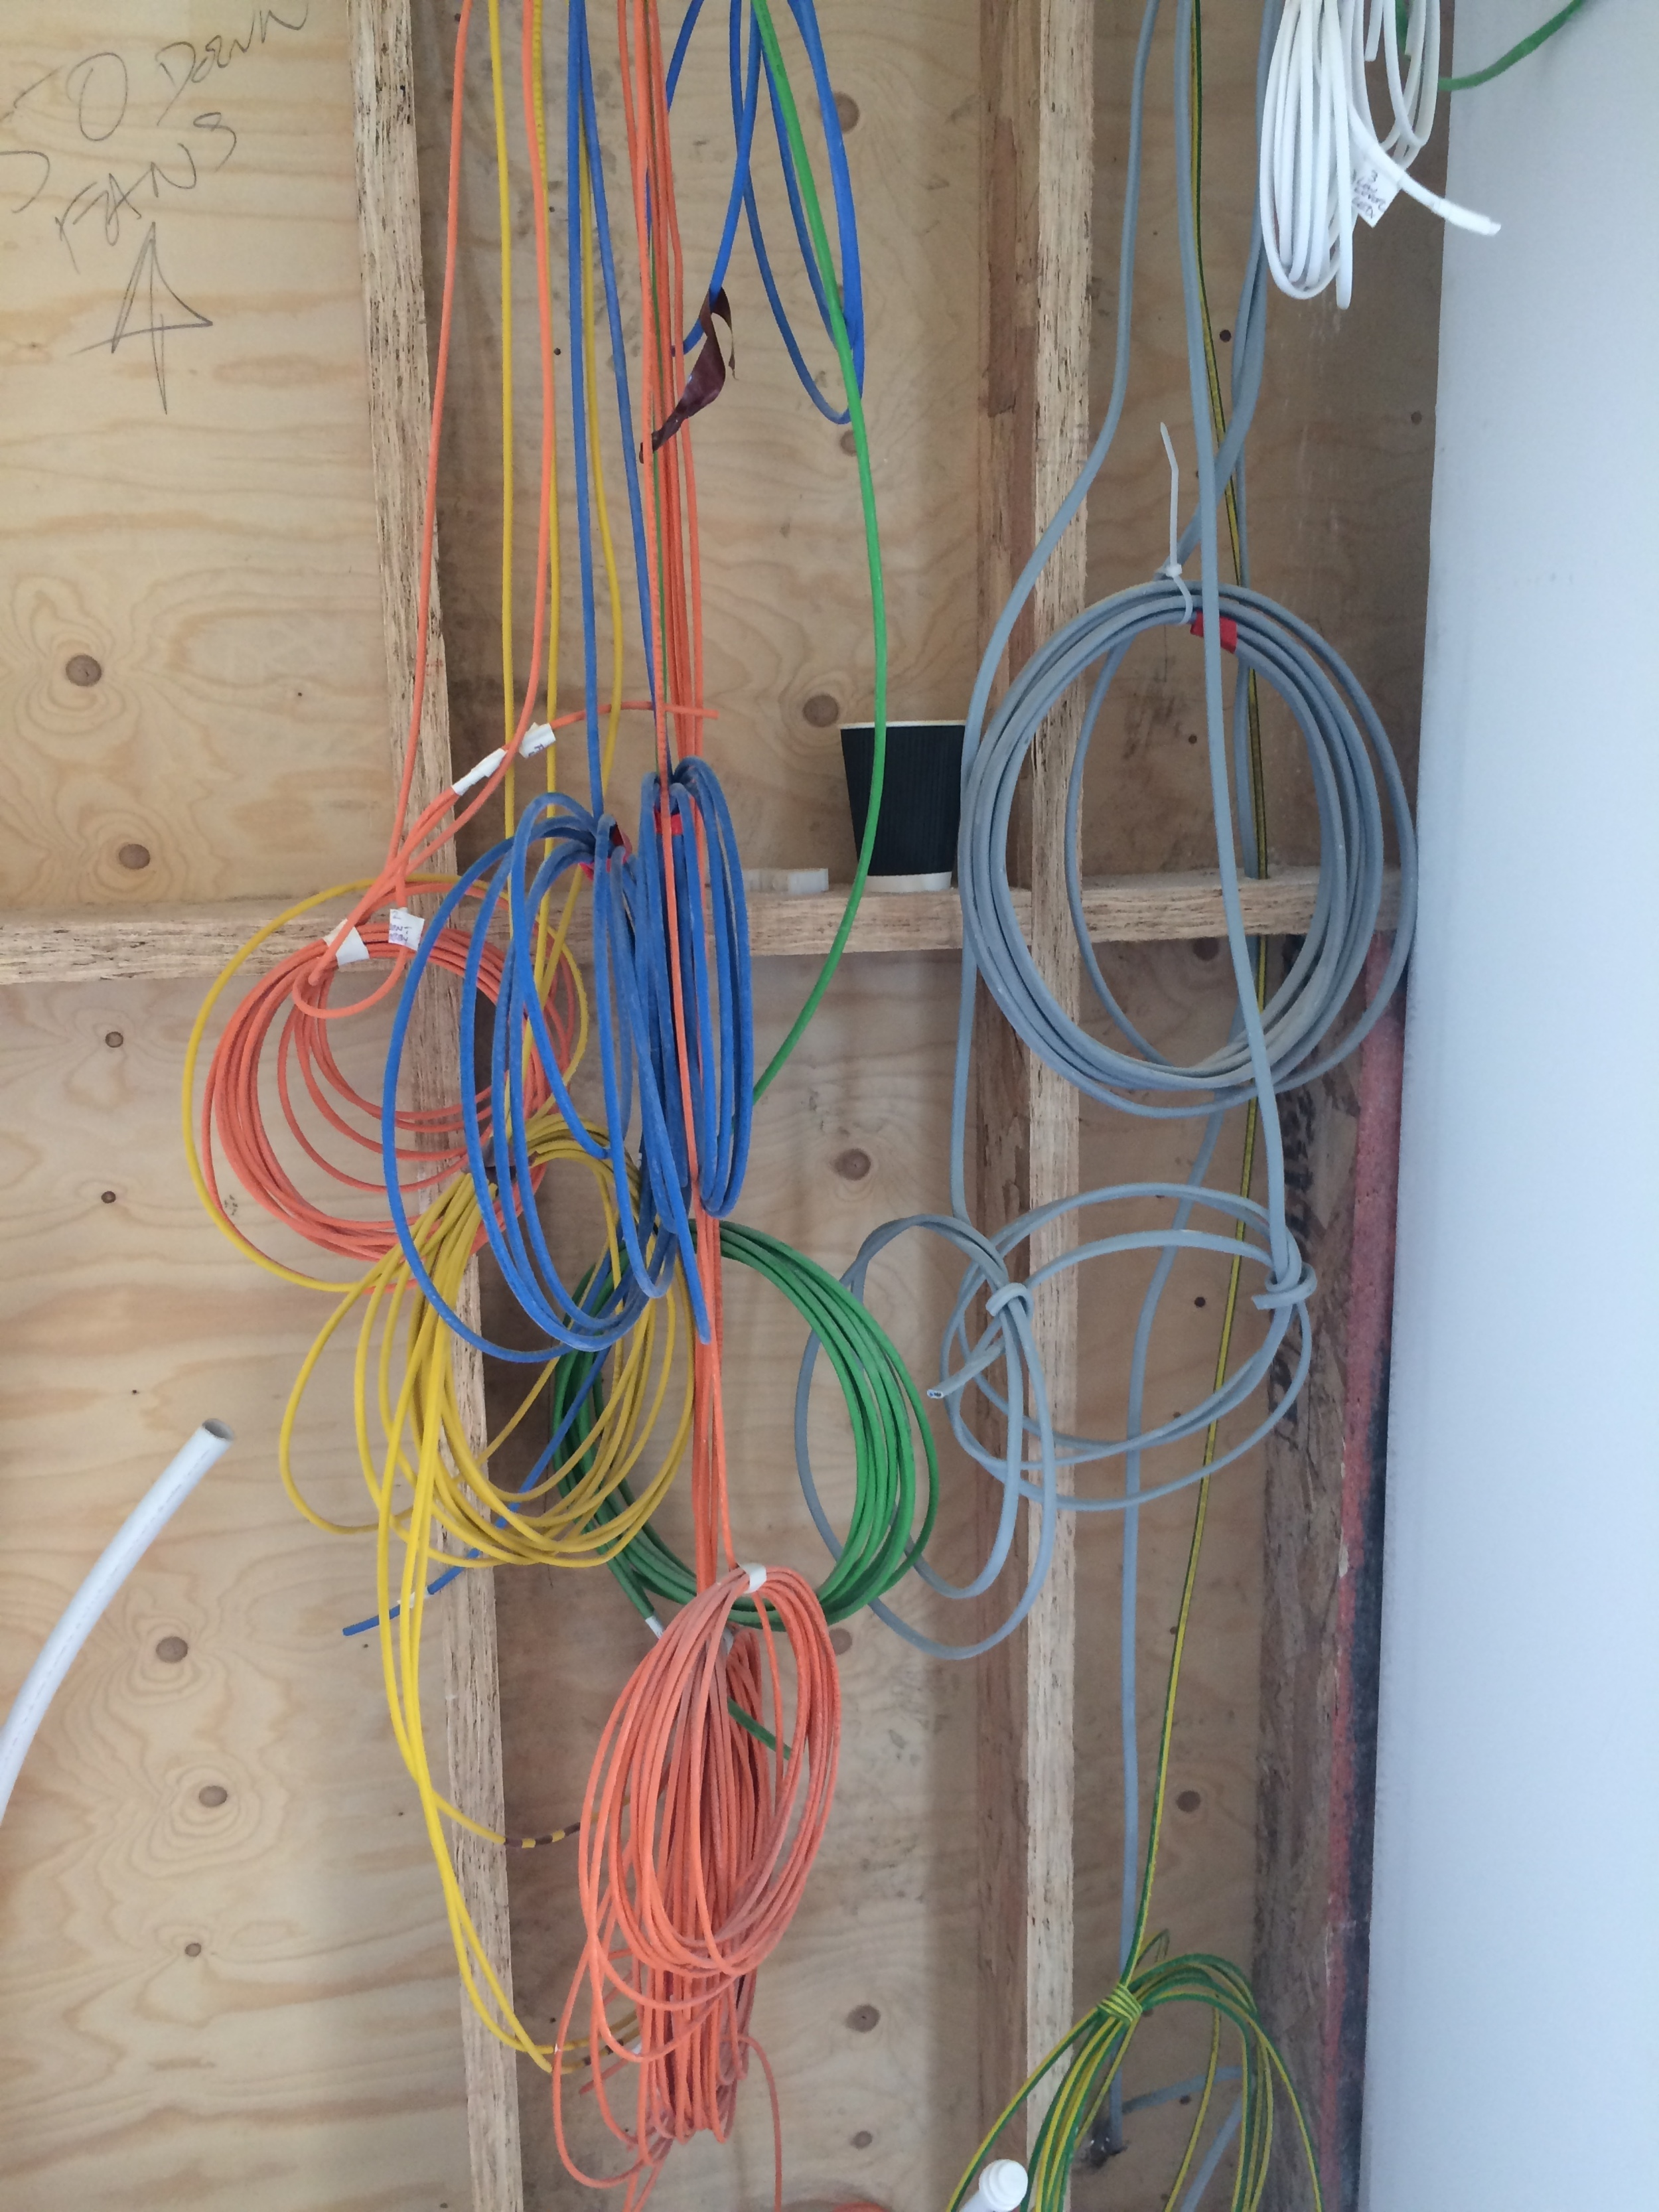 Cables Maketh The Smart Home Liveinstall Selfbuild Ukcw Wiring Smart2015